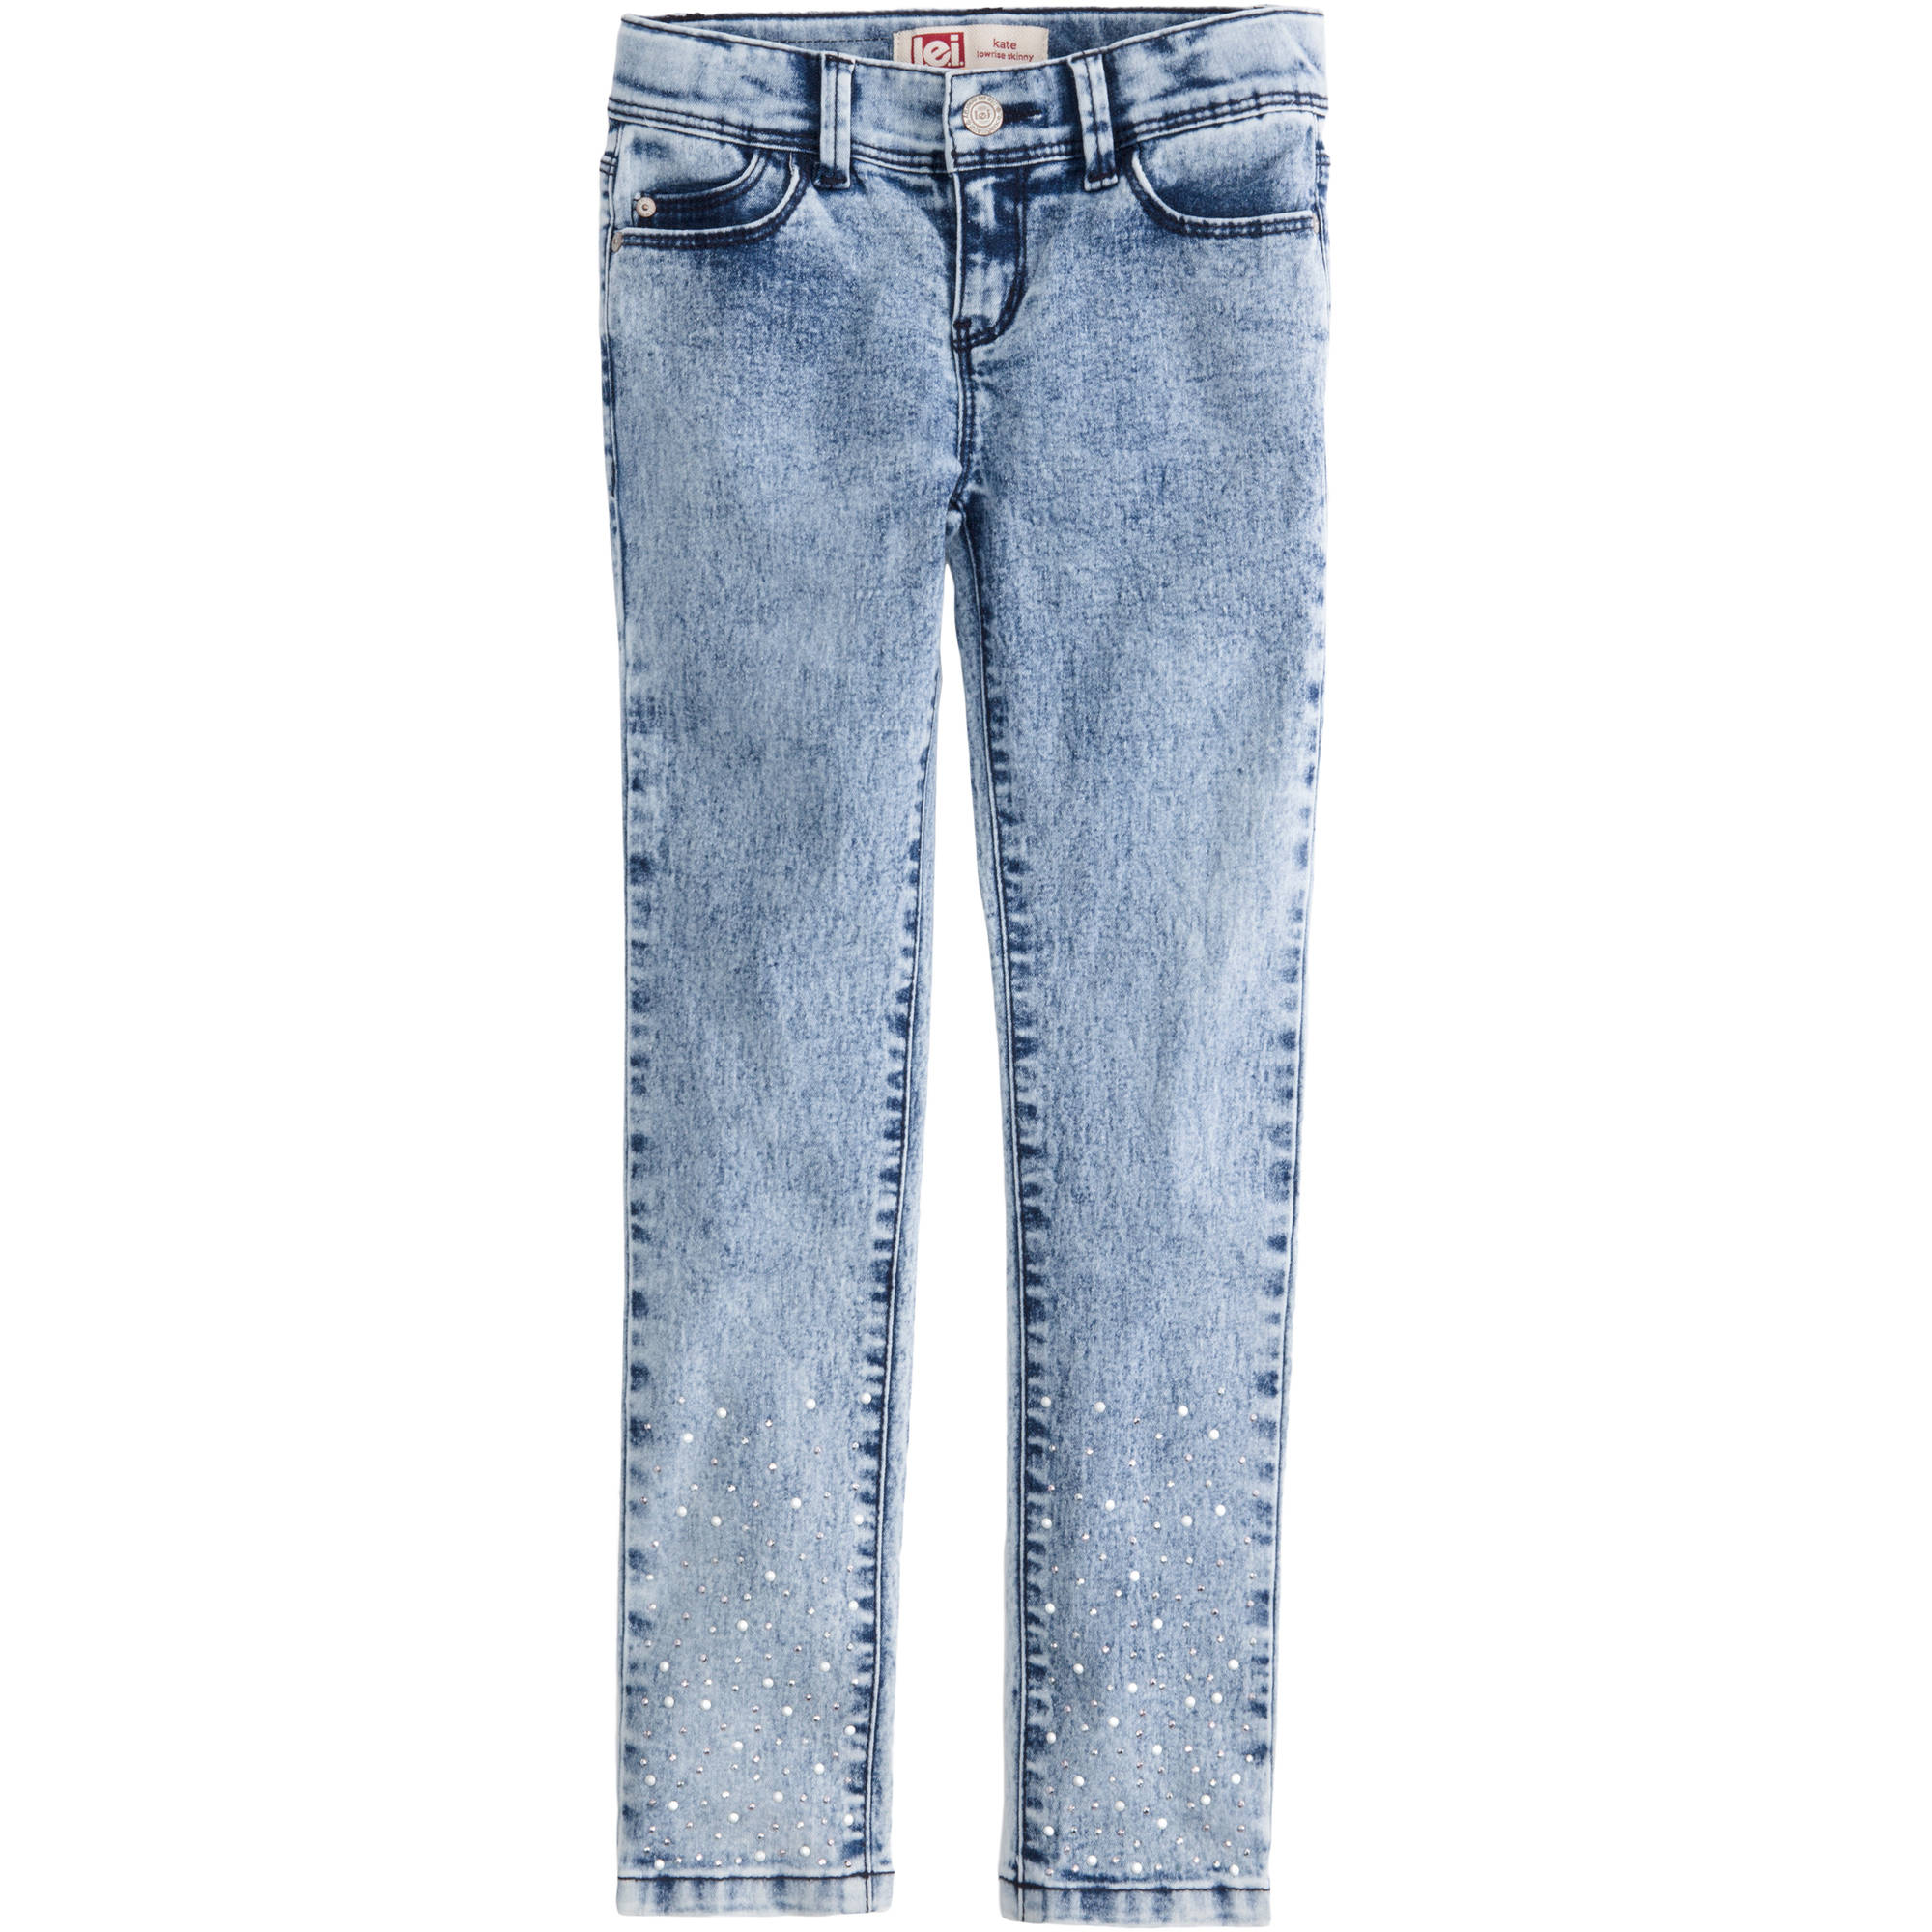 L.E.I. Girls' Super Skinny Jean